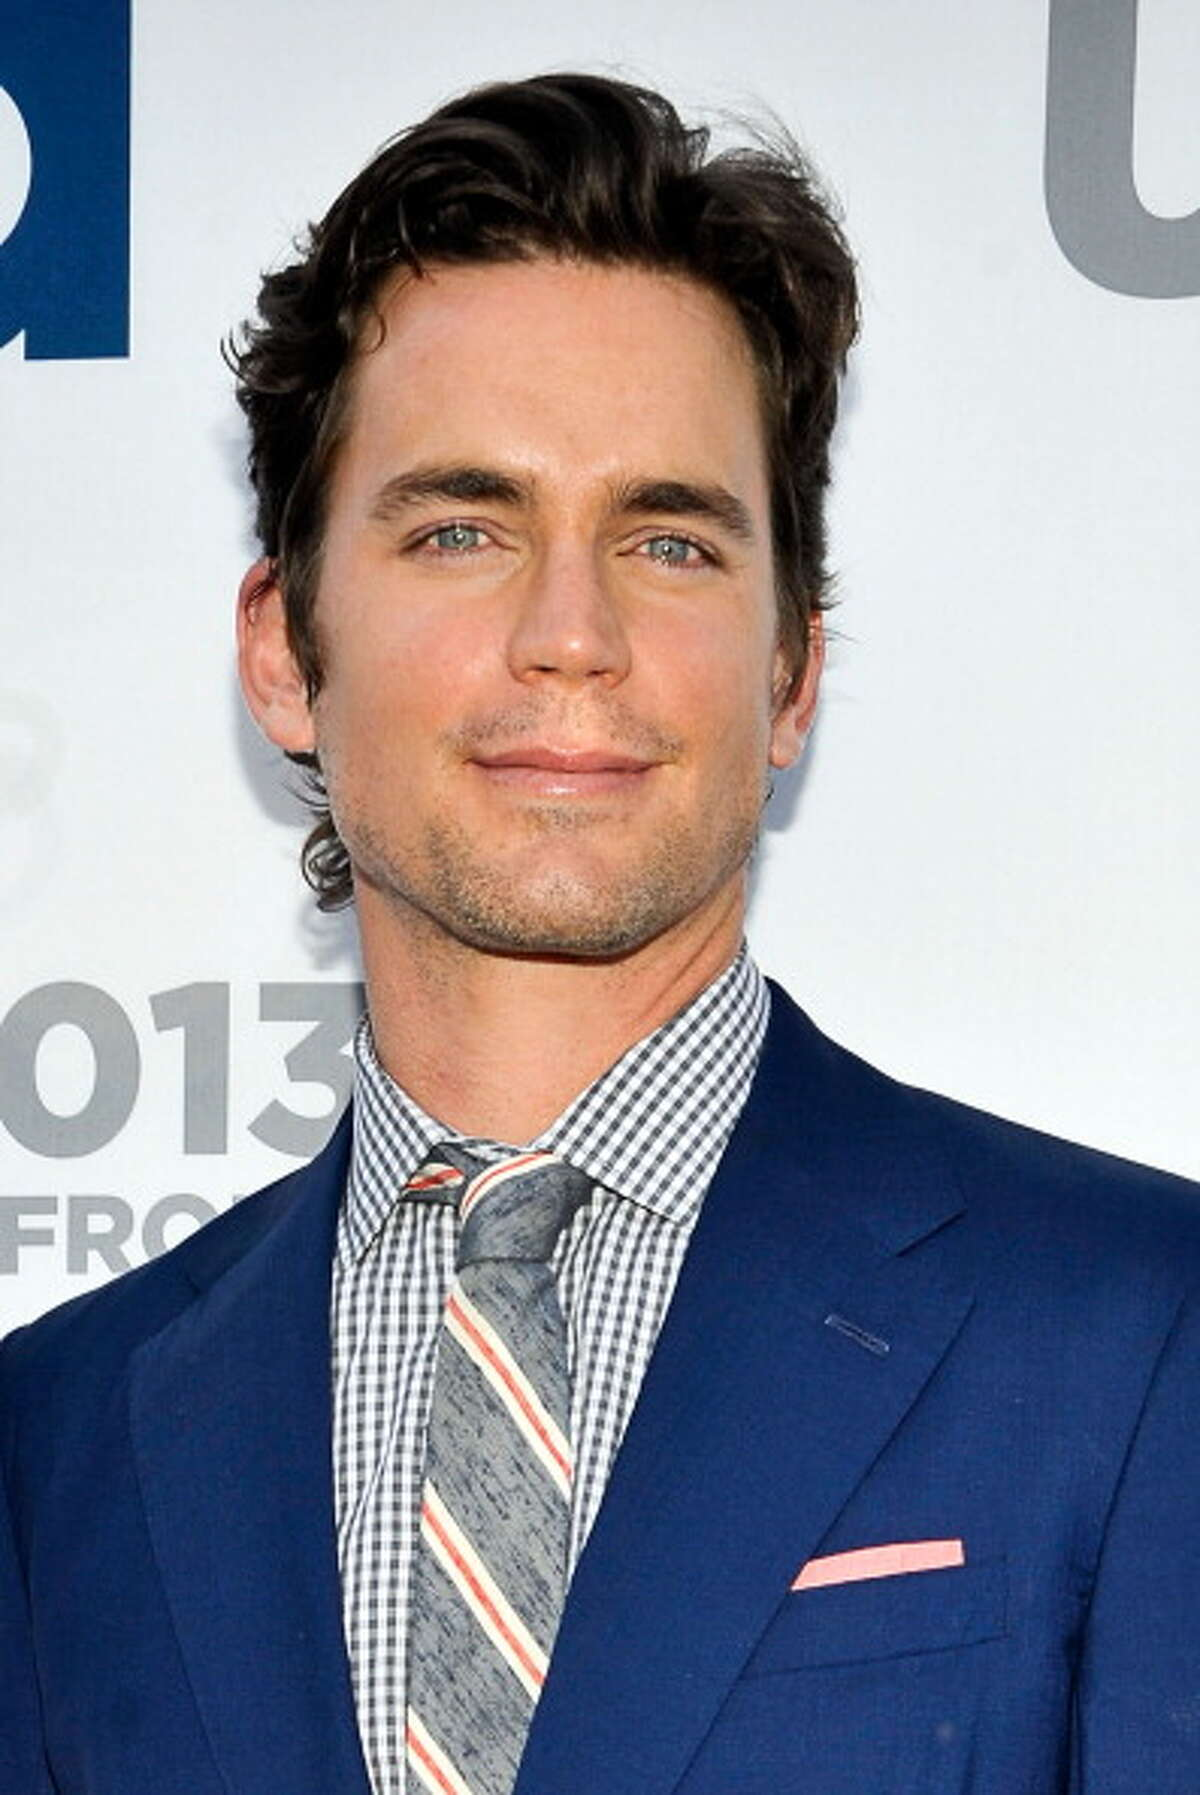 Matt Bomer , who grew up in Spring (near Houston), won an award for Best Supporting Actor in a Series or Miniseries for his role on HBO's